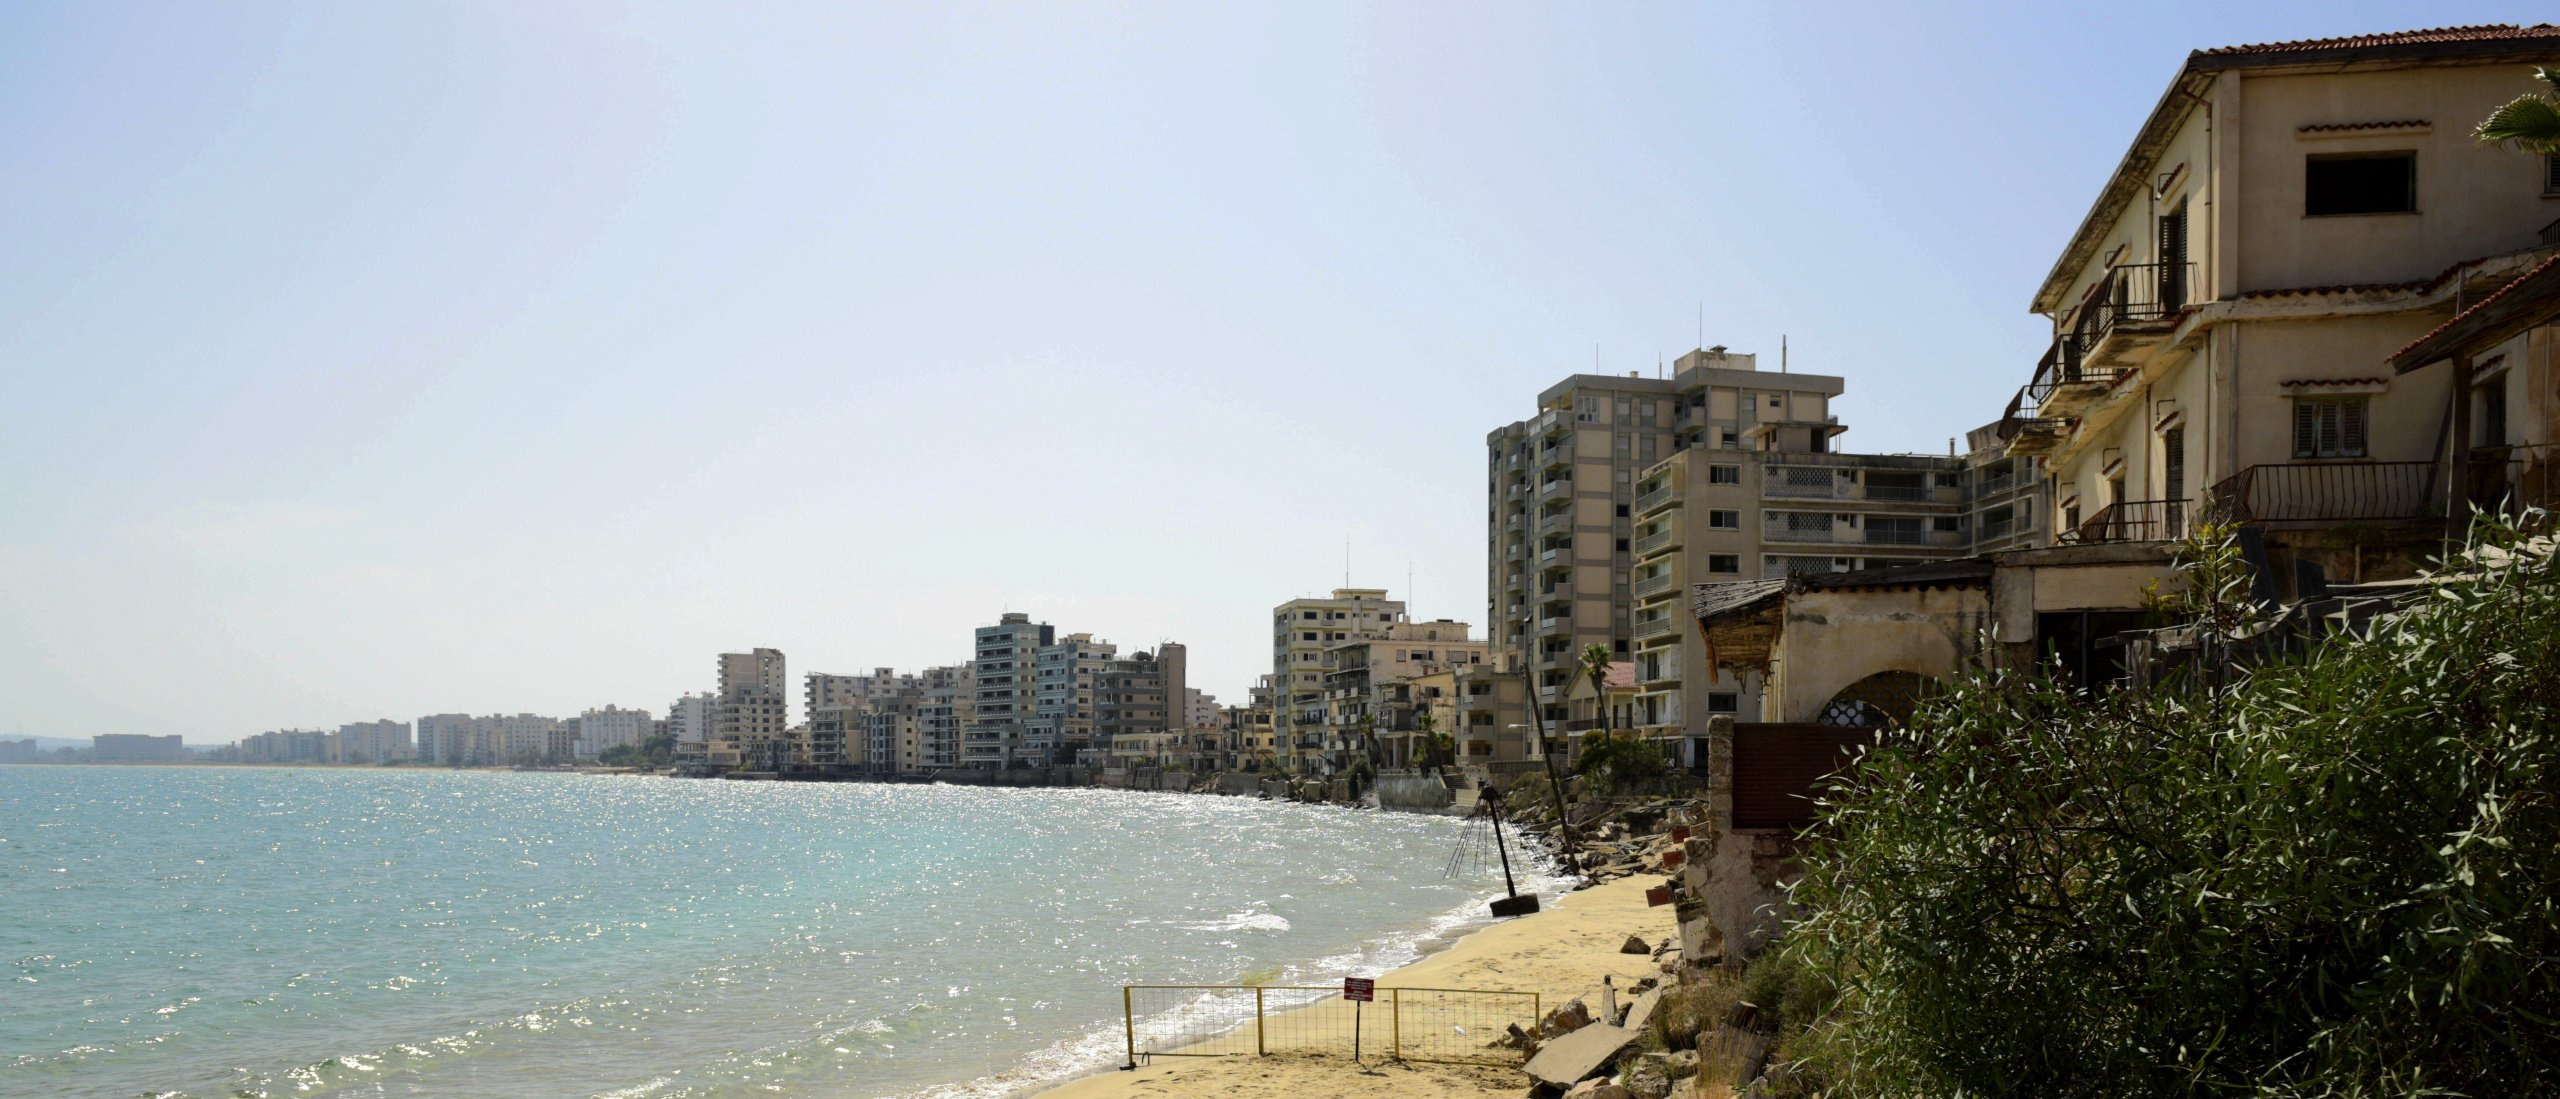 The beach with abandoned hotels seen after police open the beachfront of Varosha (Maraş) in TRNC on Oct. 8, 2020. (AP Photo)